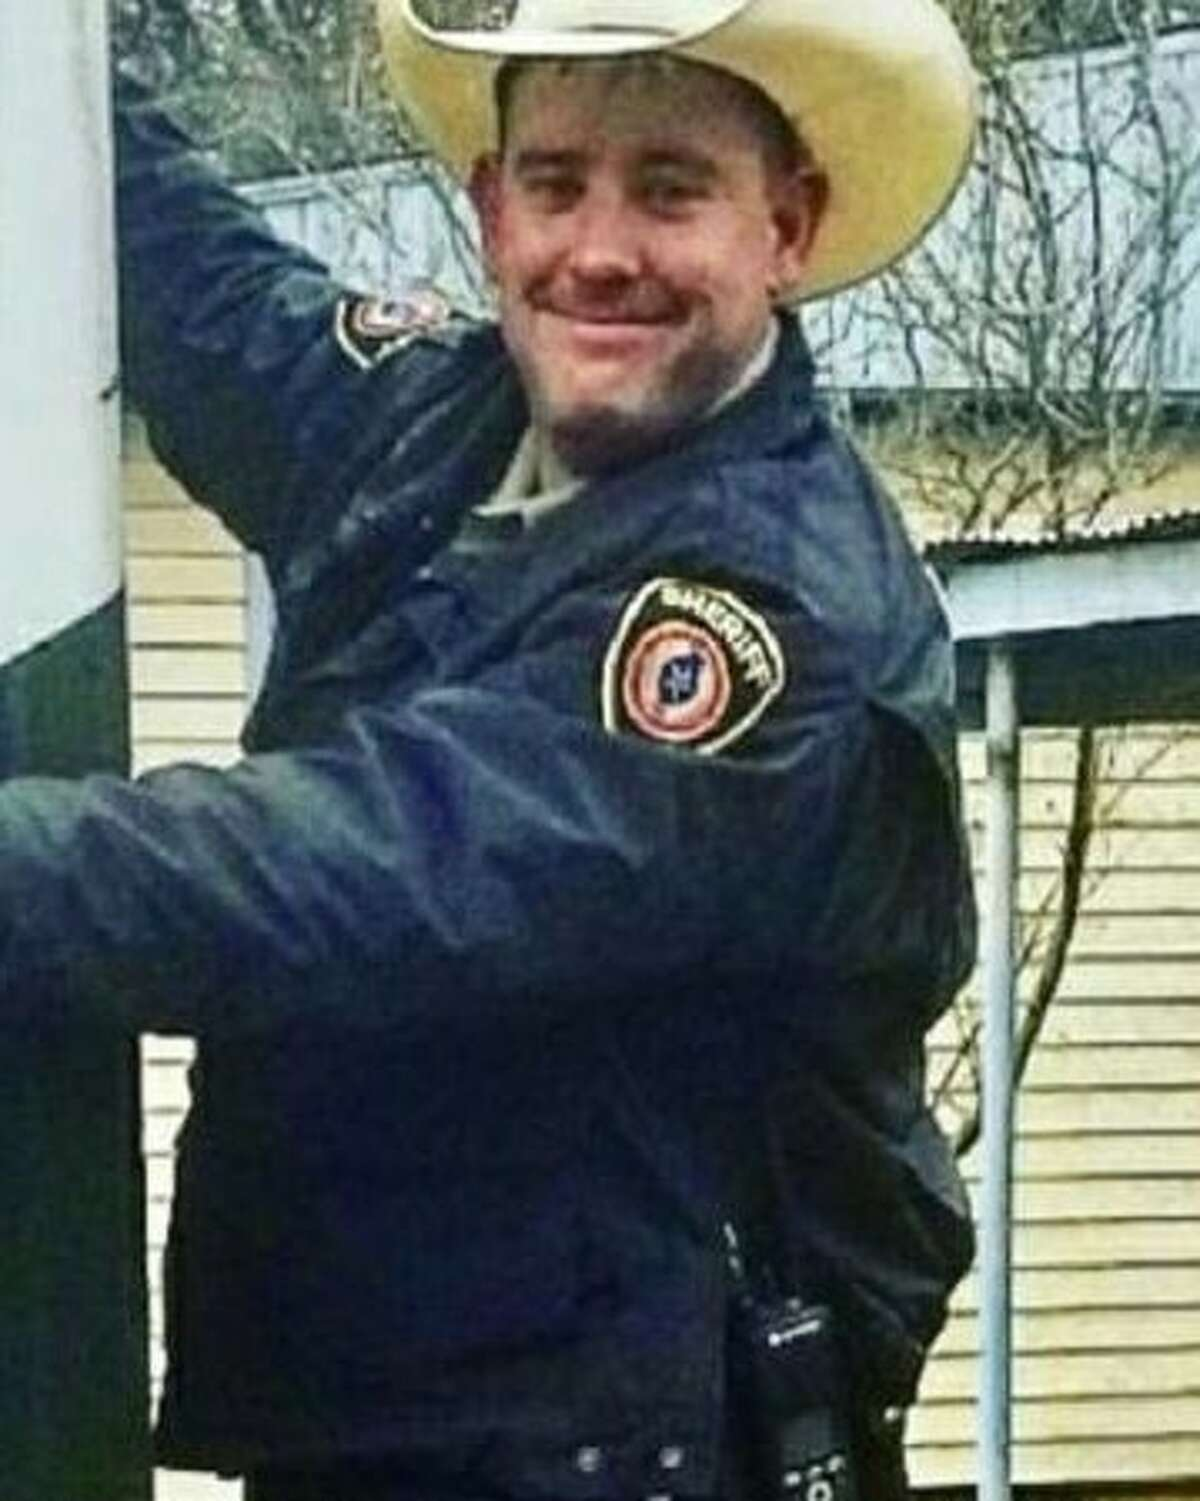 Deputy Sheriff Matthew Ryan Jones Falls County Sheriff's Office, TX EOW: Friday, October 11, 2019 Cause of Death: Struck by vehicle Ryan,30, was struck and killed by a vehicle as he assisted a disabled motorist.